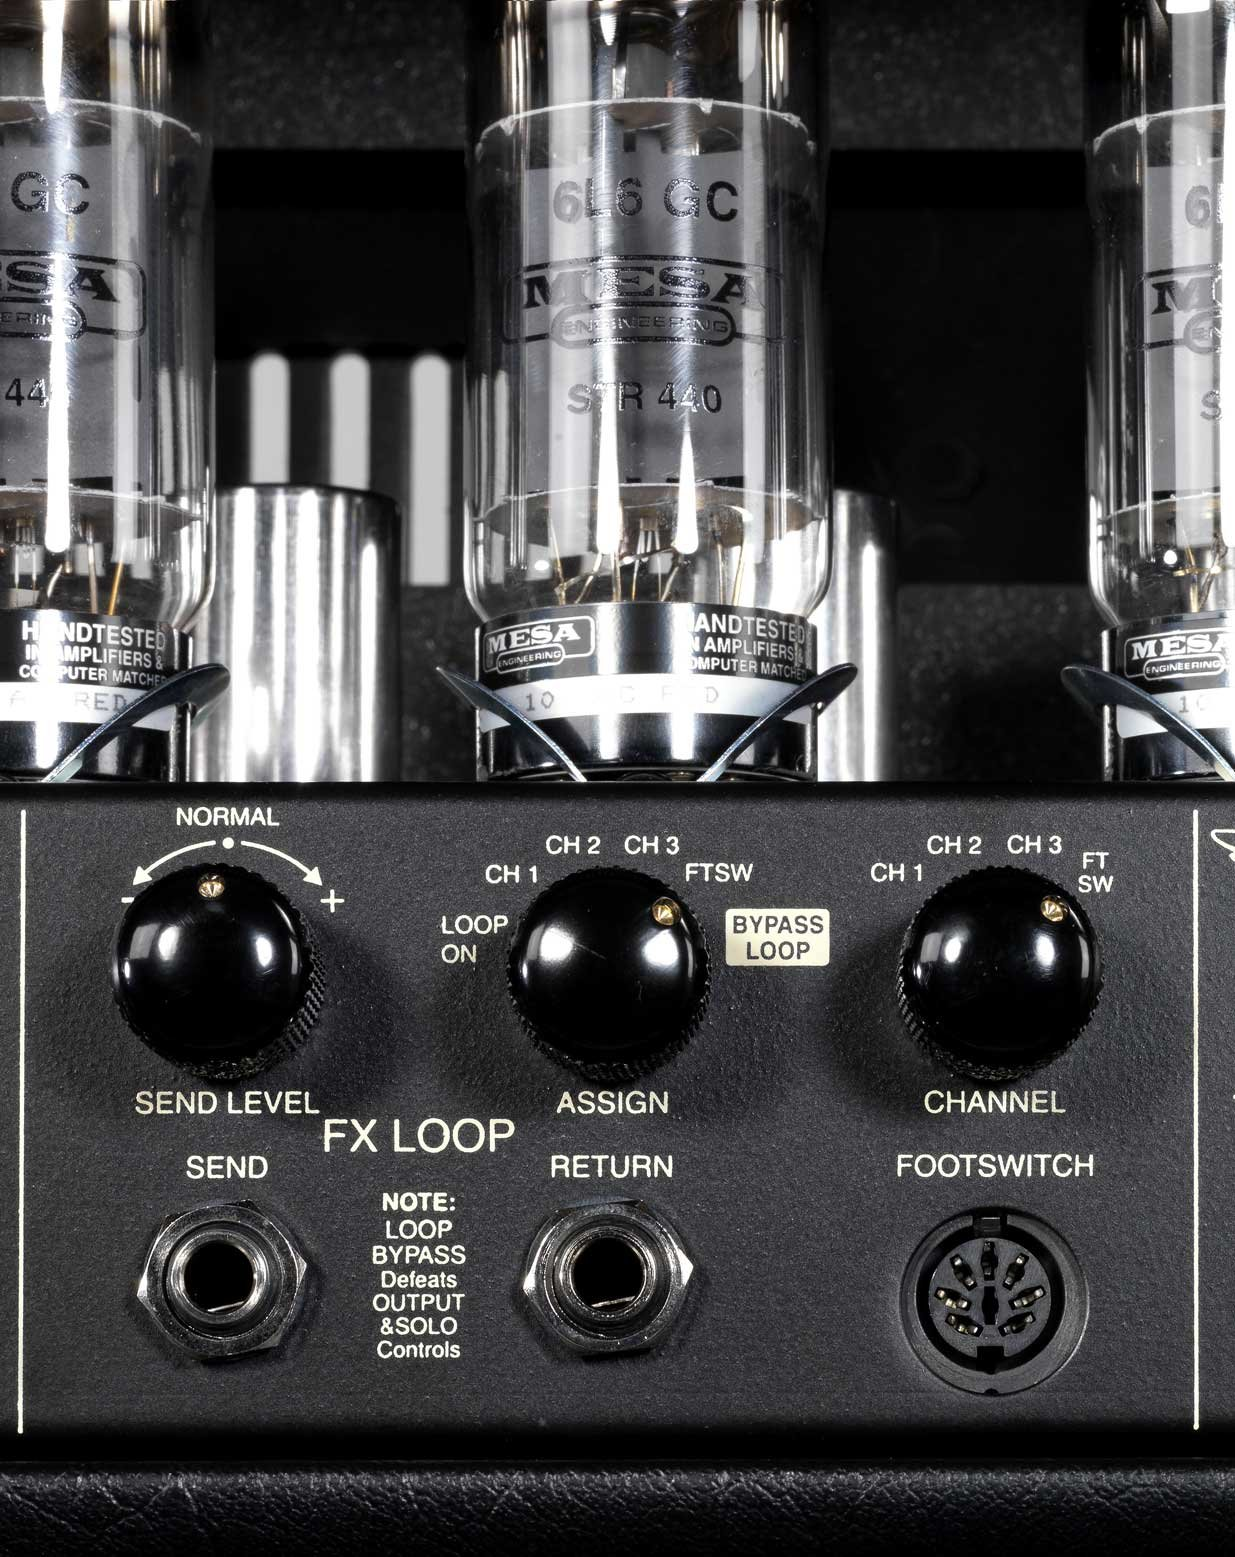 Dual Rectifier 100w 3 Ch Tube Guitar Amplifier Head By Mesa Boogie Many Parts Of Solo Schematic Diagram